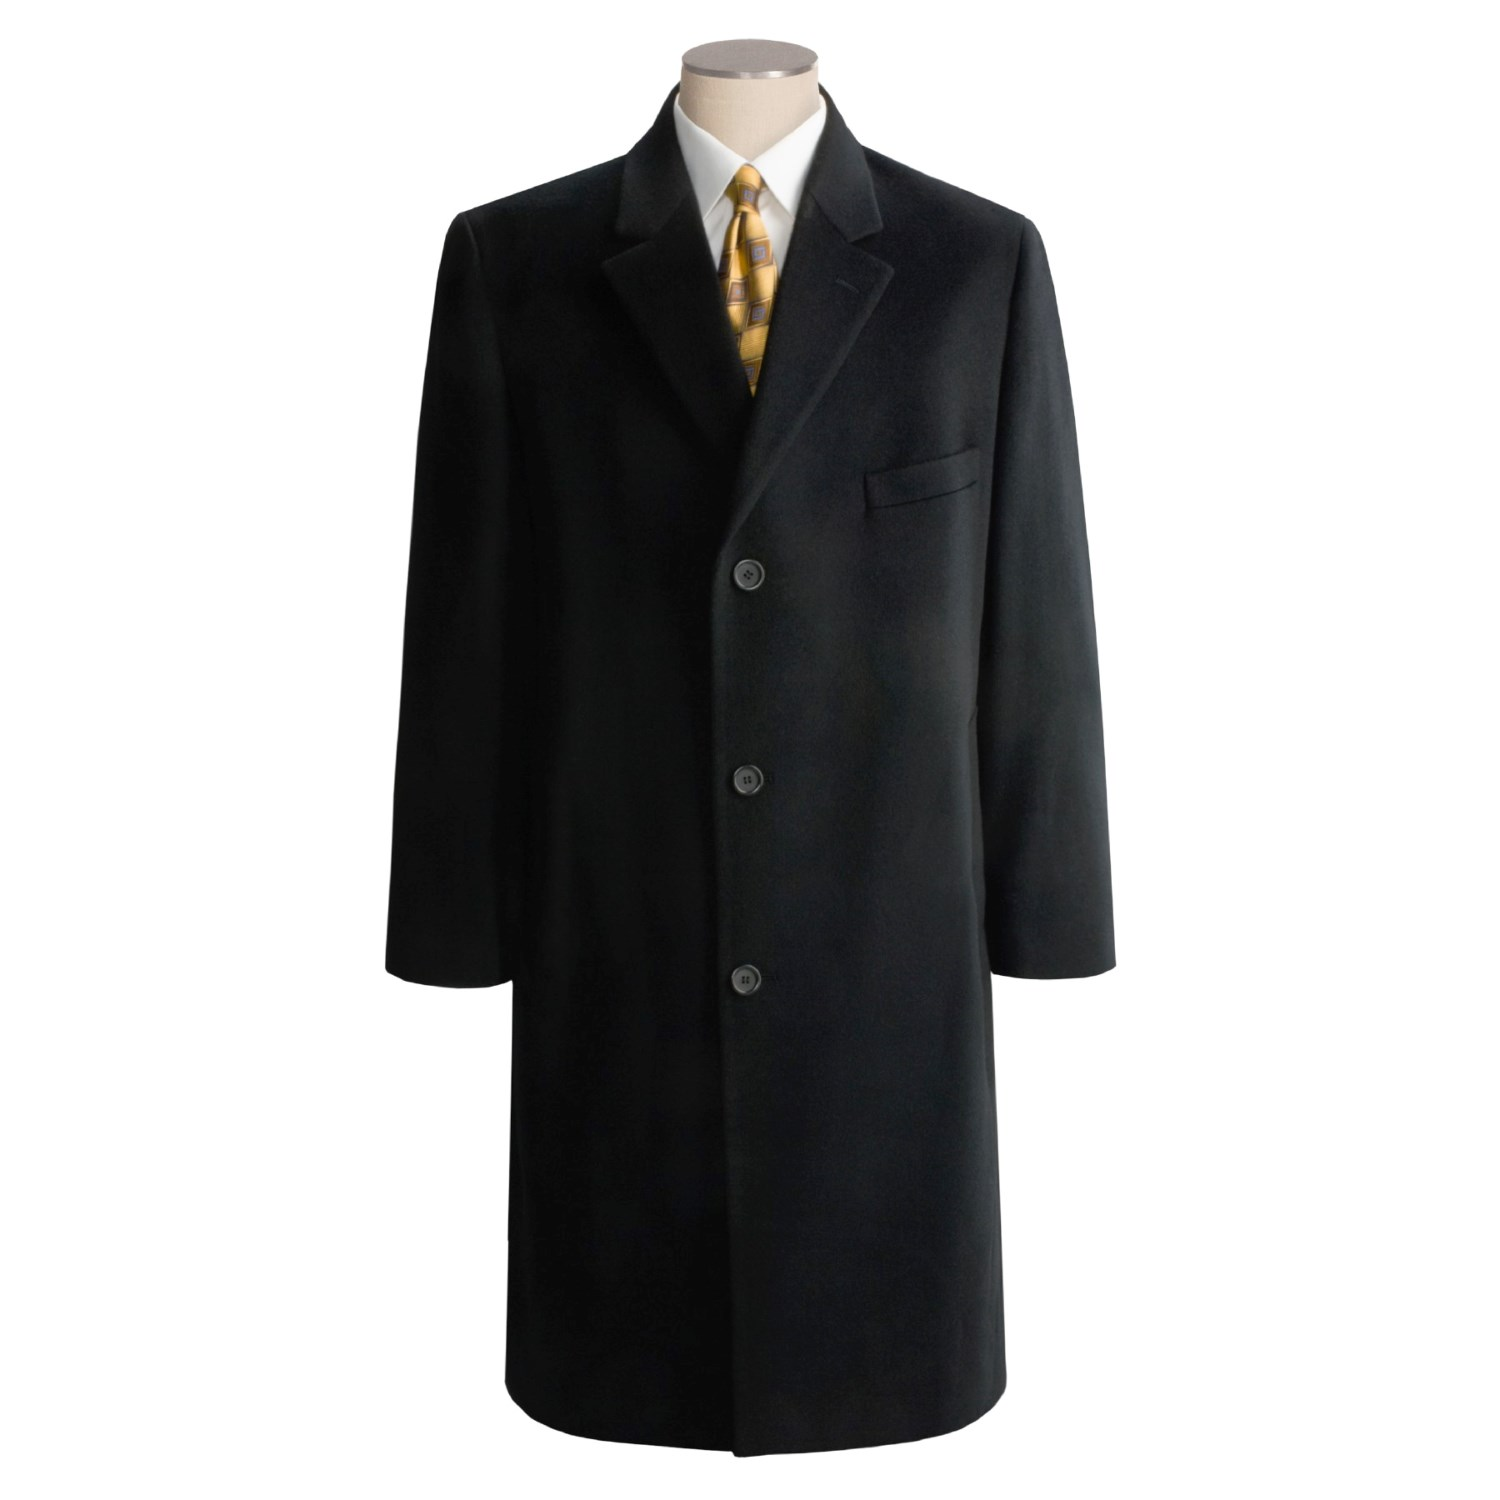 lauren by ralph lauren full length top coat for men. Black Bedroom Furniture Sets. Home Design Ideas